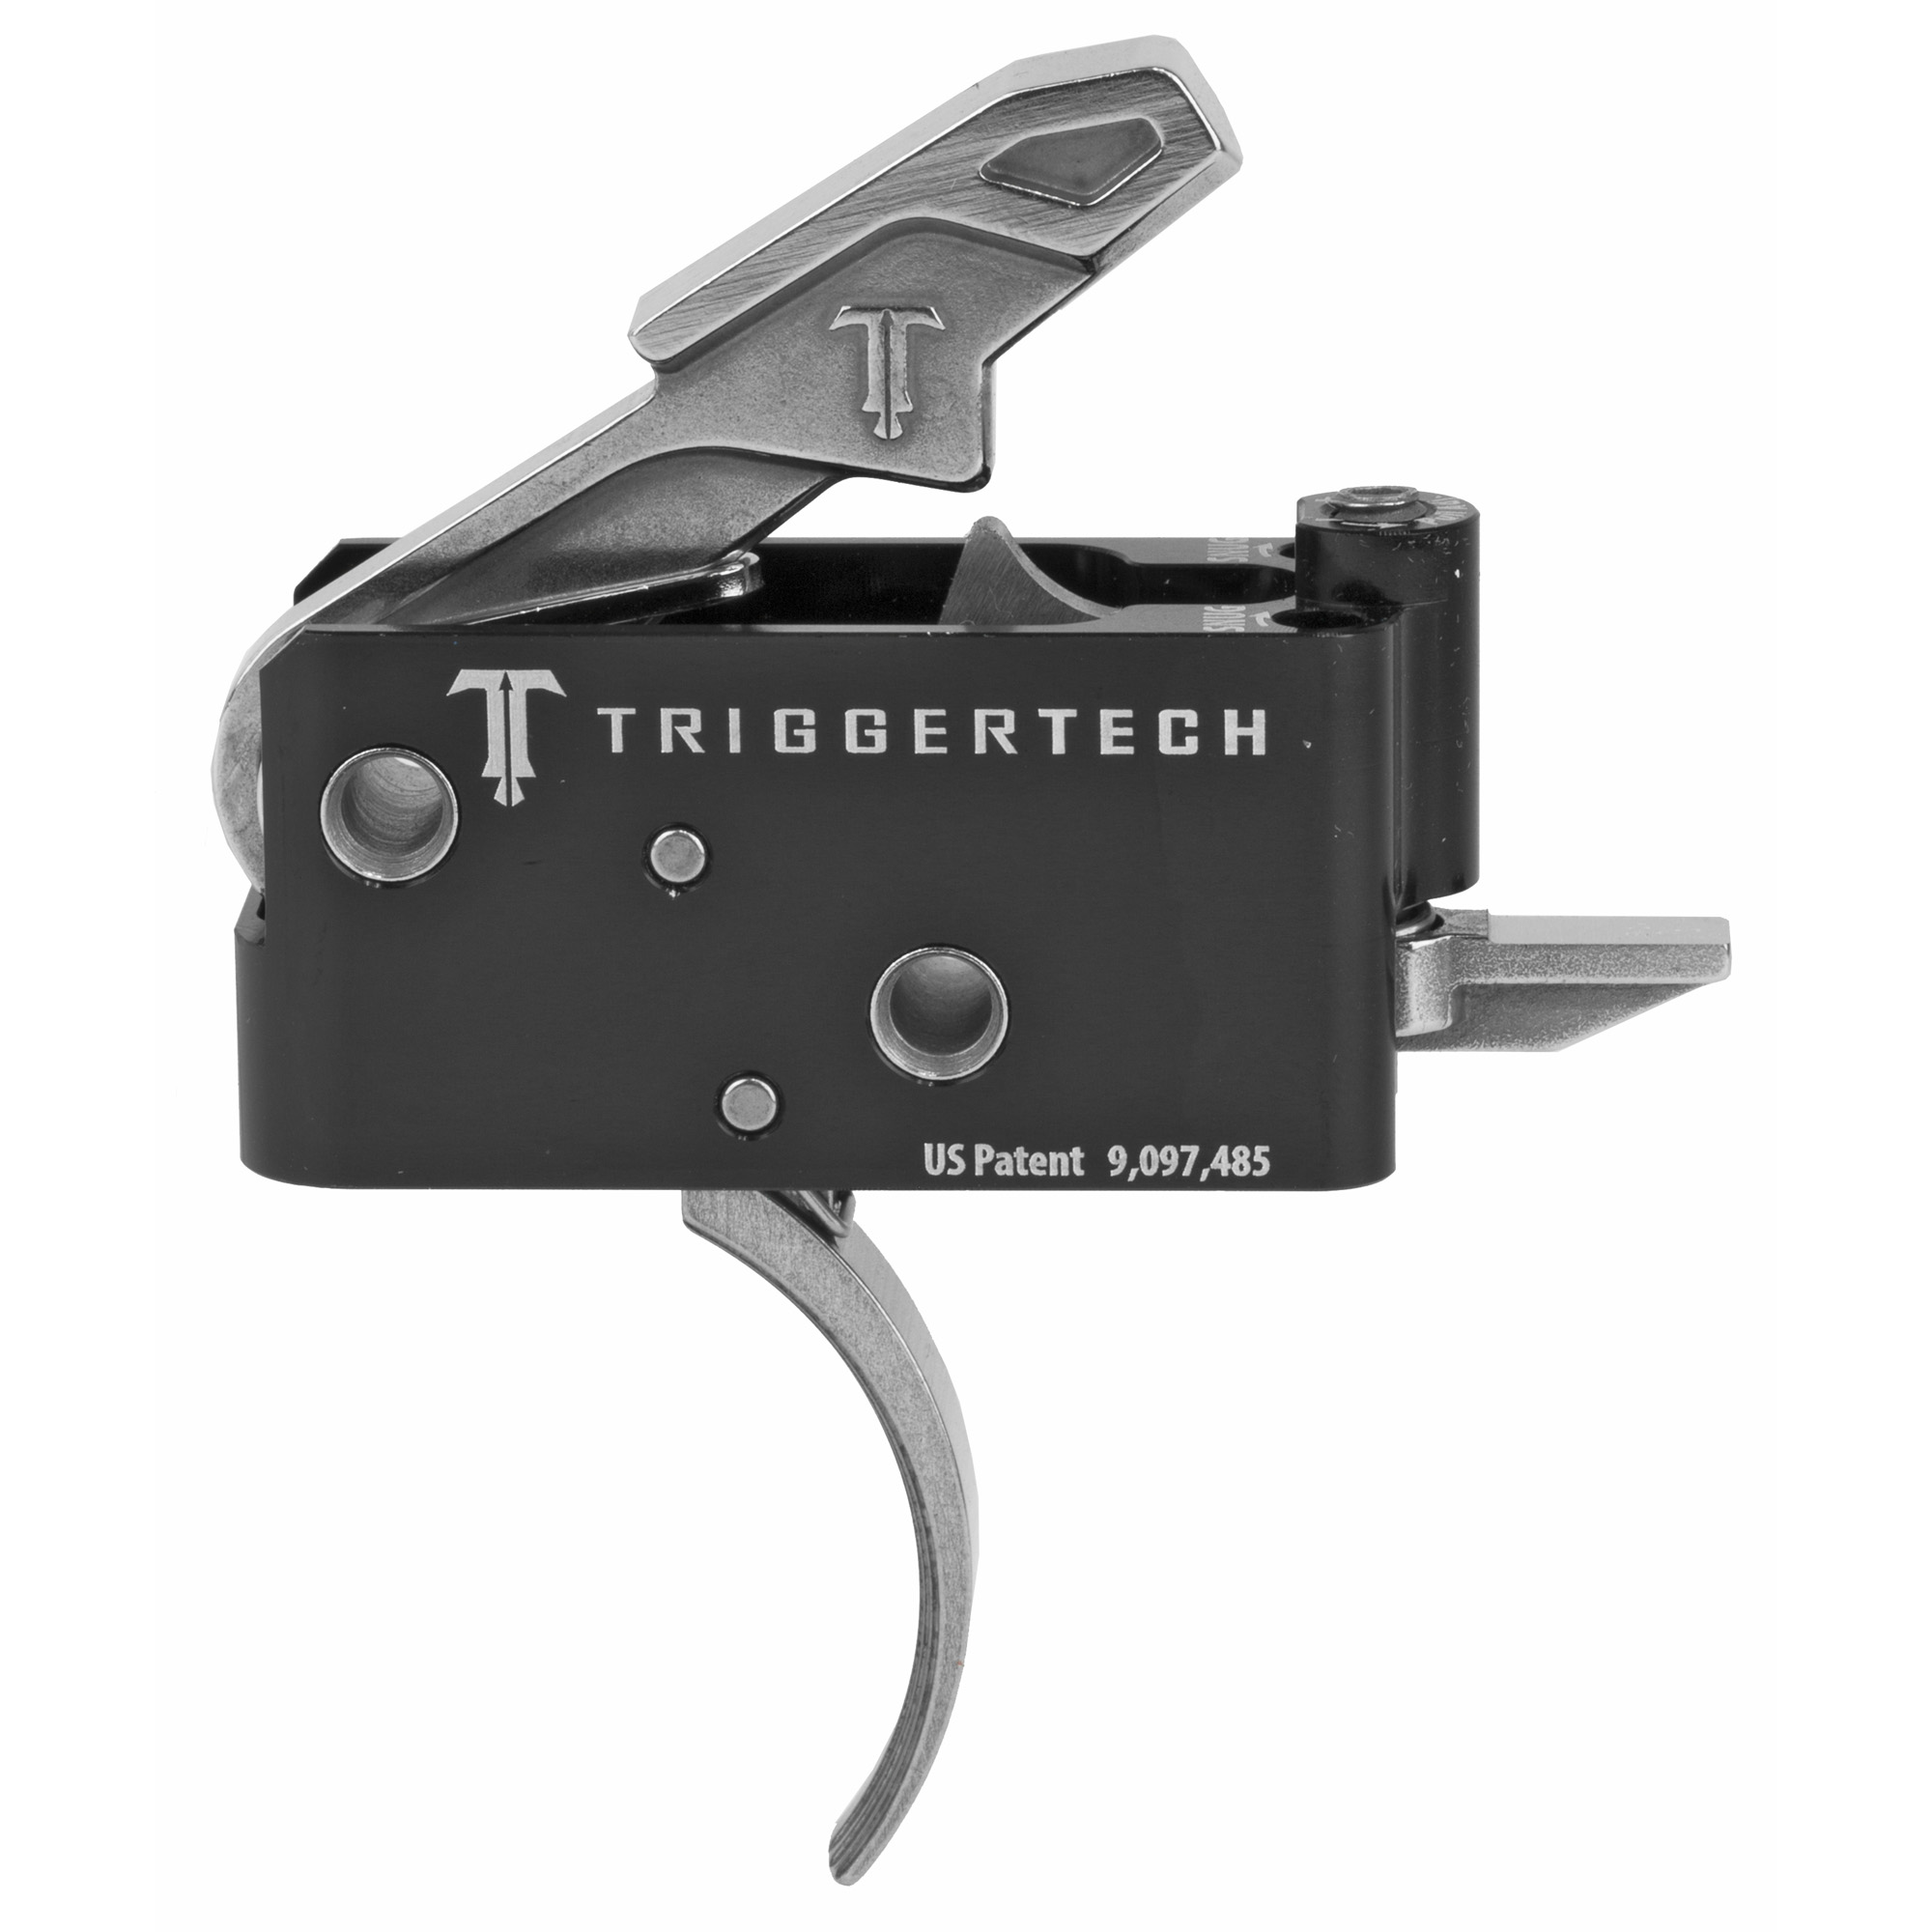 """The Adaptable AR Primary Trigger was built to satisfy the demand of having one trigger capable of enhancing the accuracy and precision of an AR in every role. Featuring Frictionless Release Technology"""" this drop-in AR trigger has a short"""" two-stage action"""" designed to feel like a 1911 trigger"""" that provides a true zero-creep break"""" extremely short overtravel"""" a sub 0.030"""" tactical reset and offers outstanding reliability"""" even in the harshest environments. Utilizing CLKR Technology"""" the pull weight is quickly and confidently adjusted from 2.5 - 5.0 lbs. in 2oz increments from a set screw with the trigger installed. Due to there being truly zero creep"""" most shooters report the pull weights feeling 0.5lbs lighter than a friction based trigger of the same measured pull weight."""